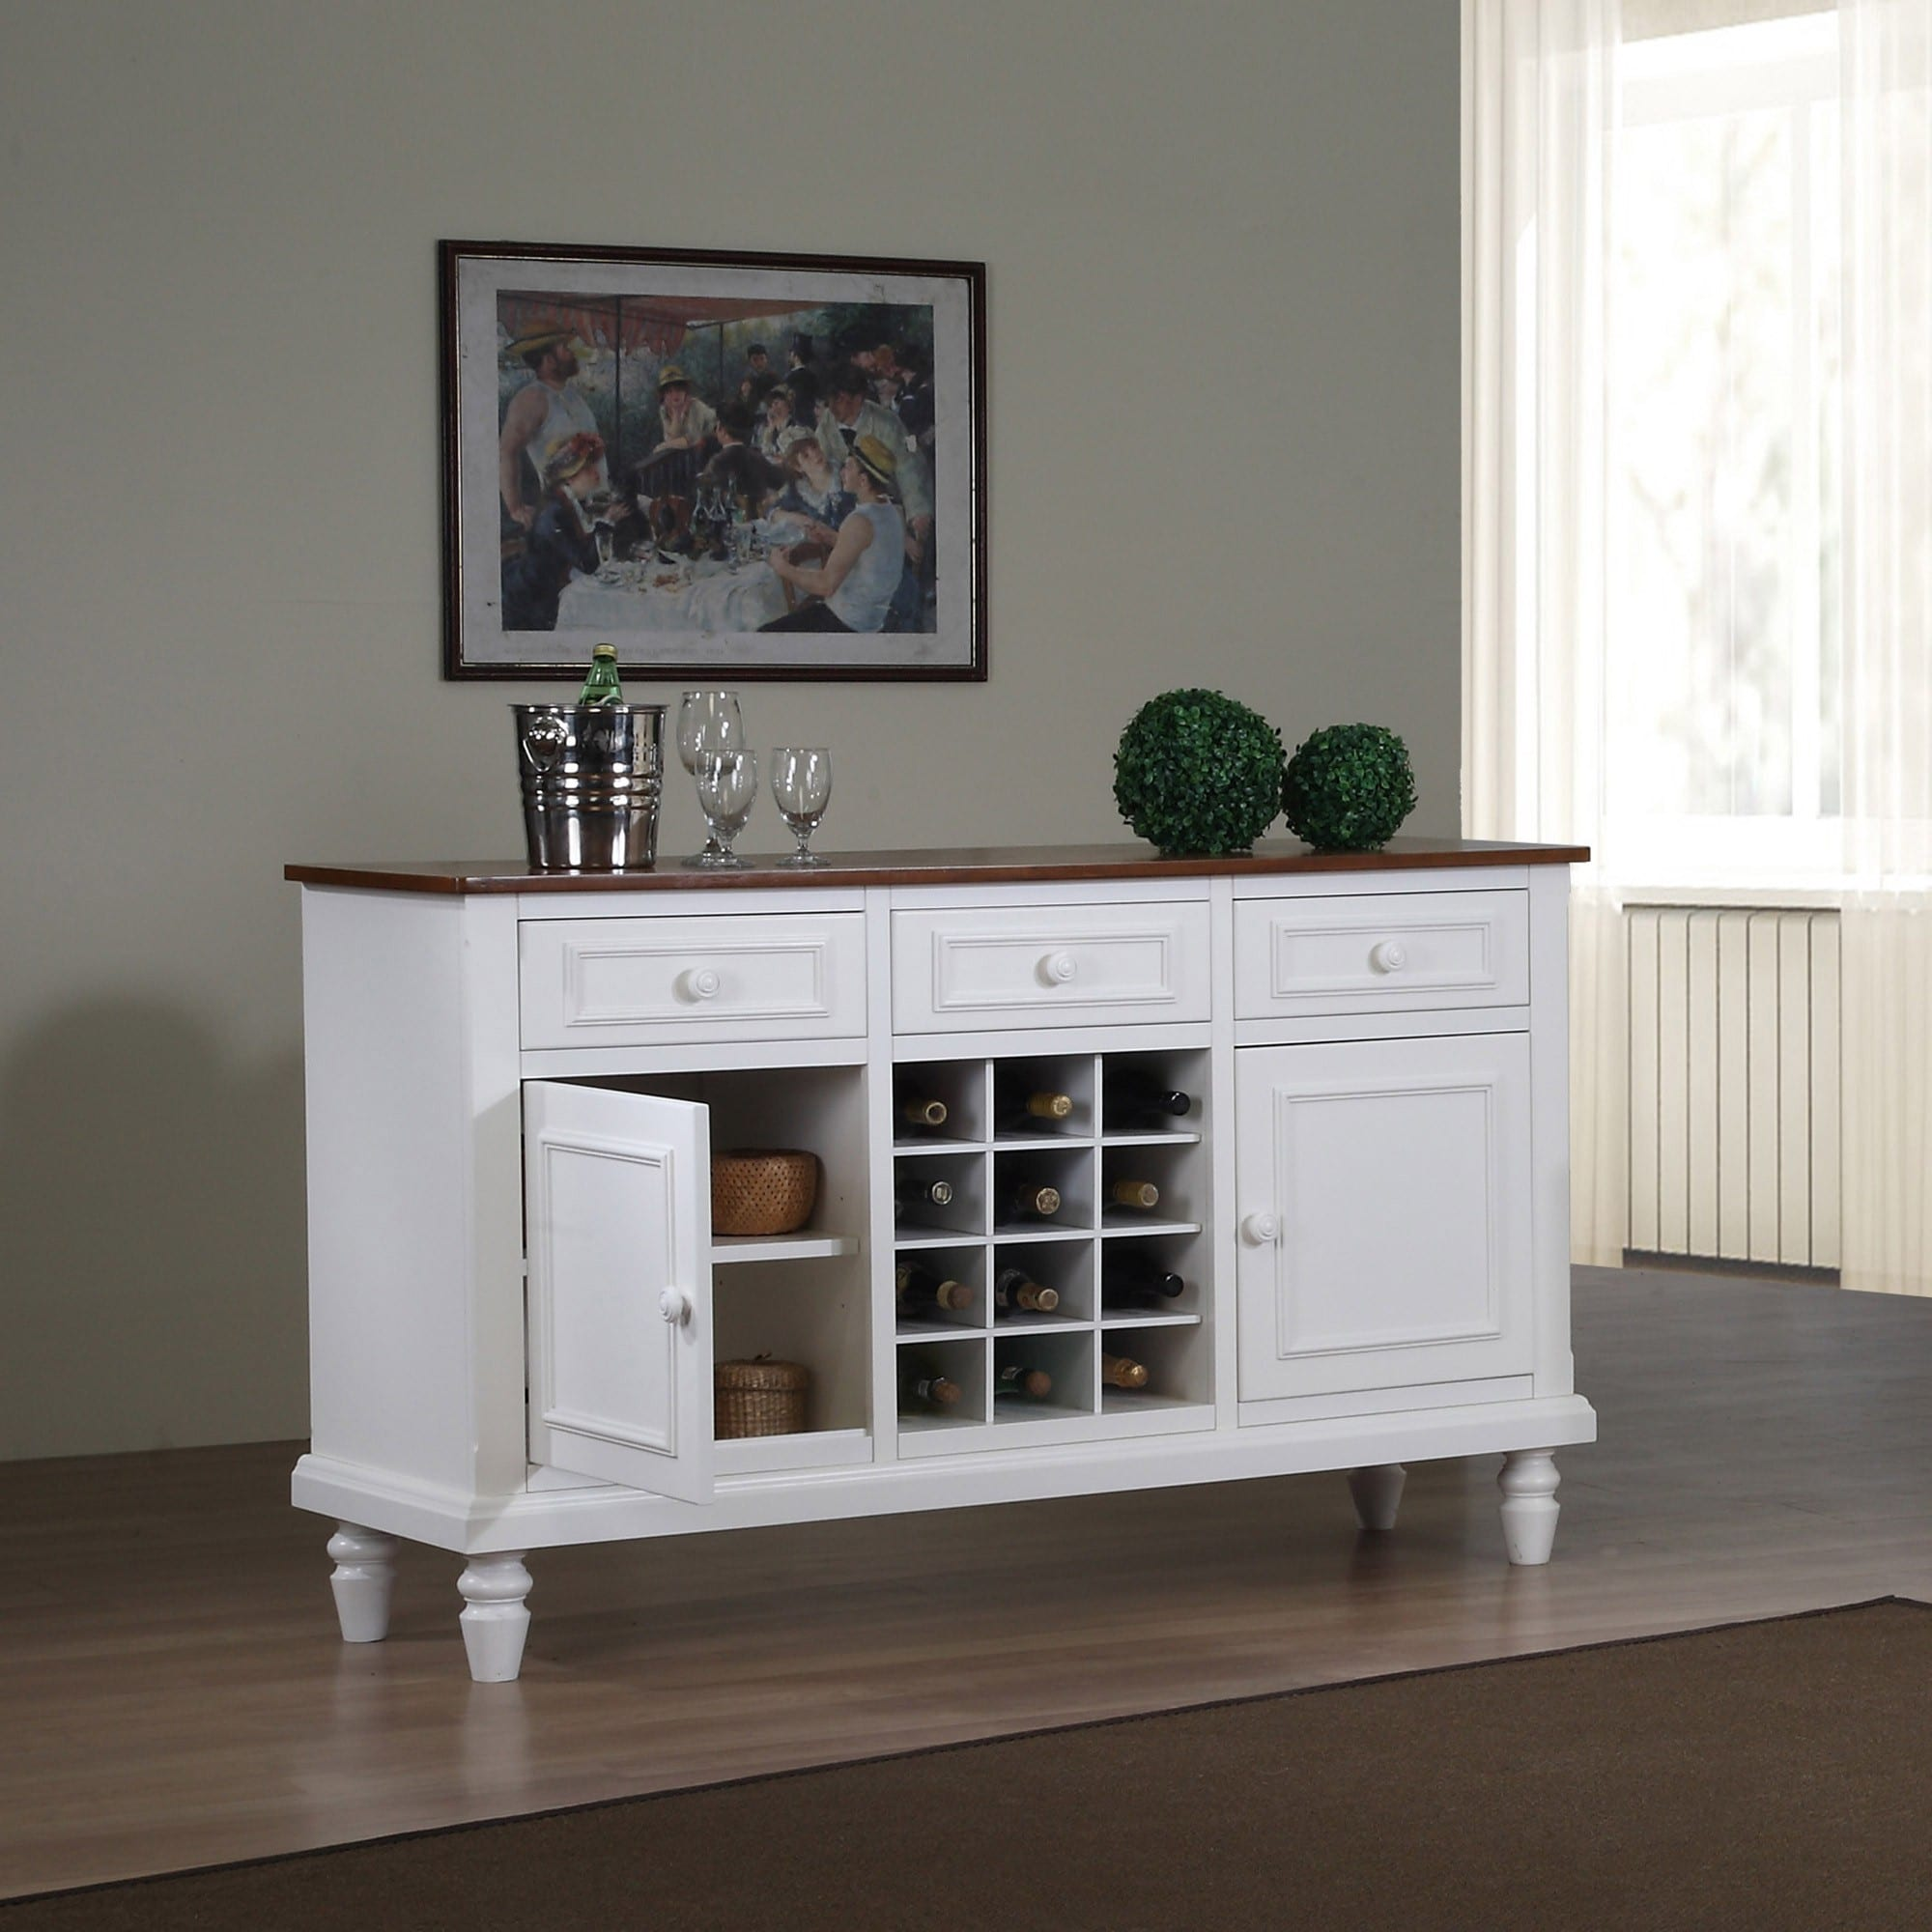 Shop Overstock.com and find the best online deals on French Count…   Country living room